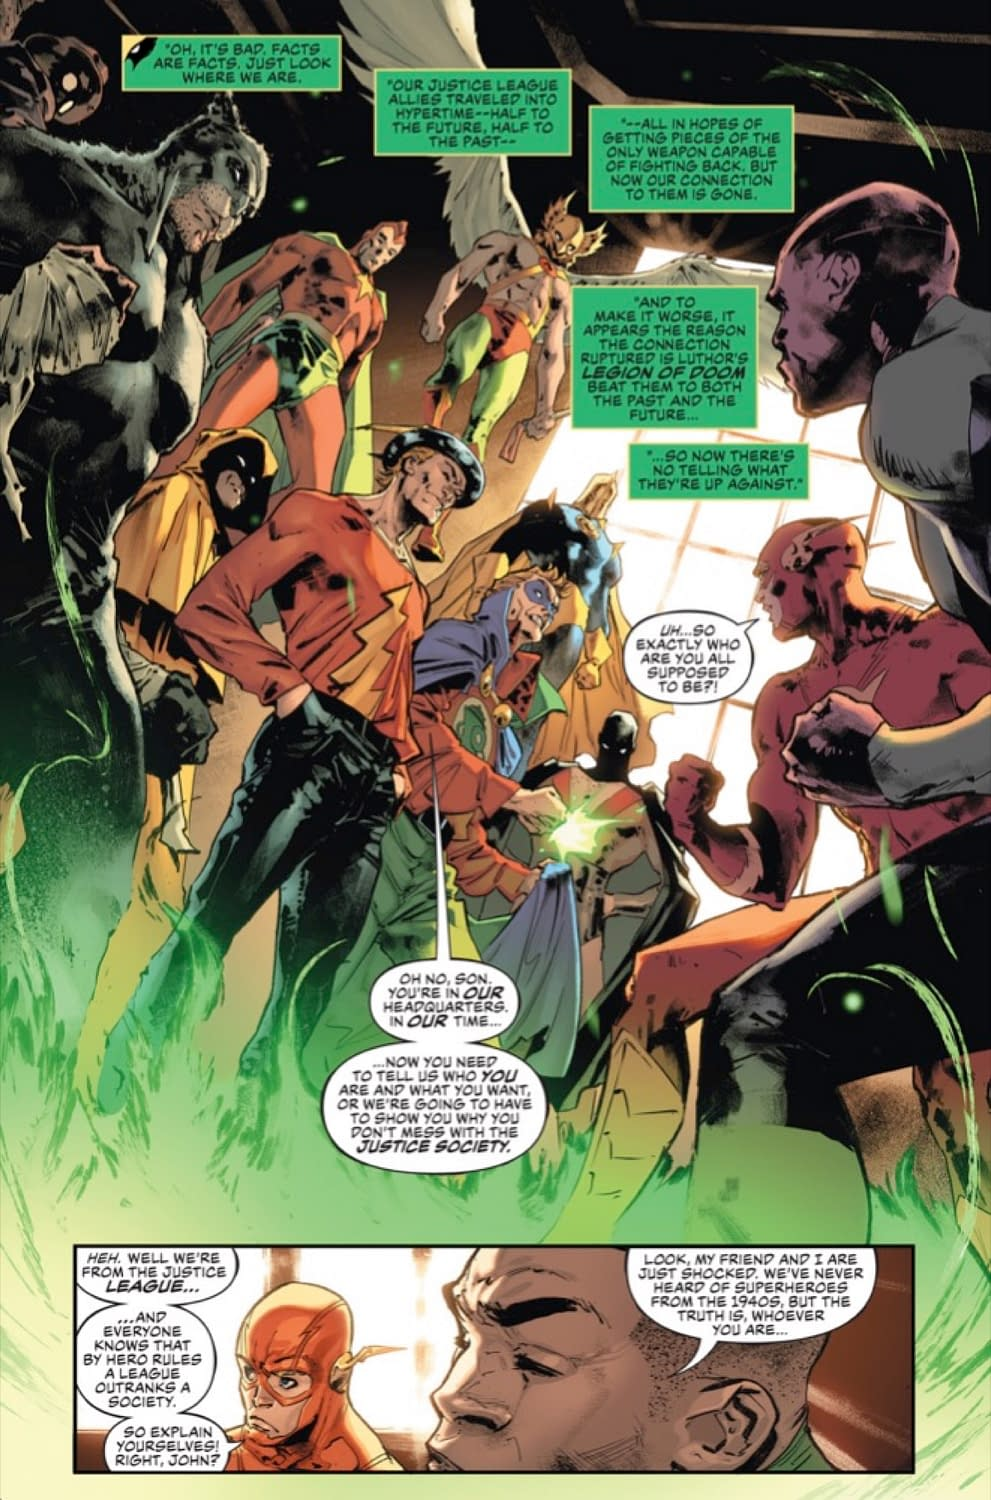 EXCLUSIVE Justive League #31 Preview